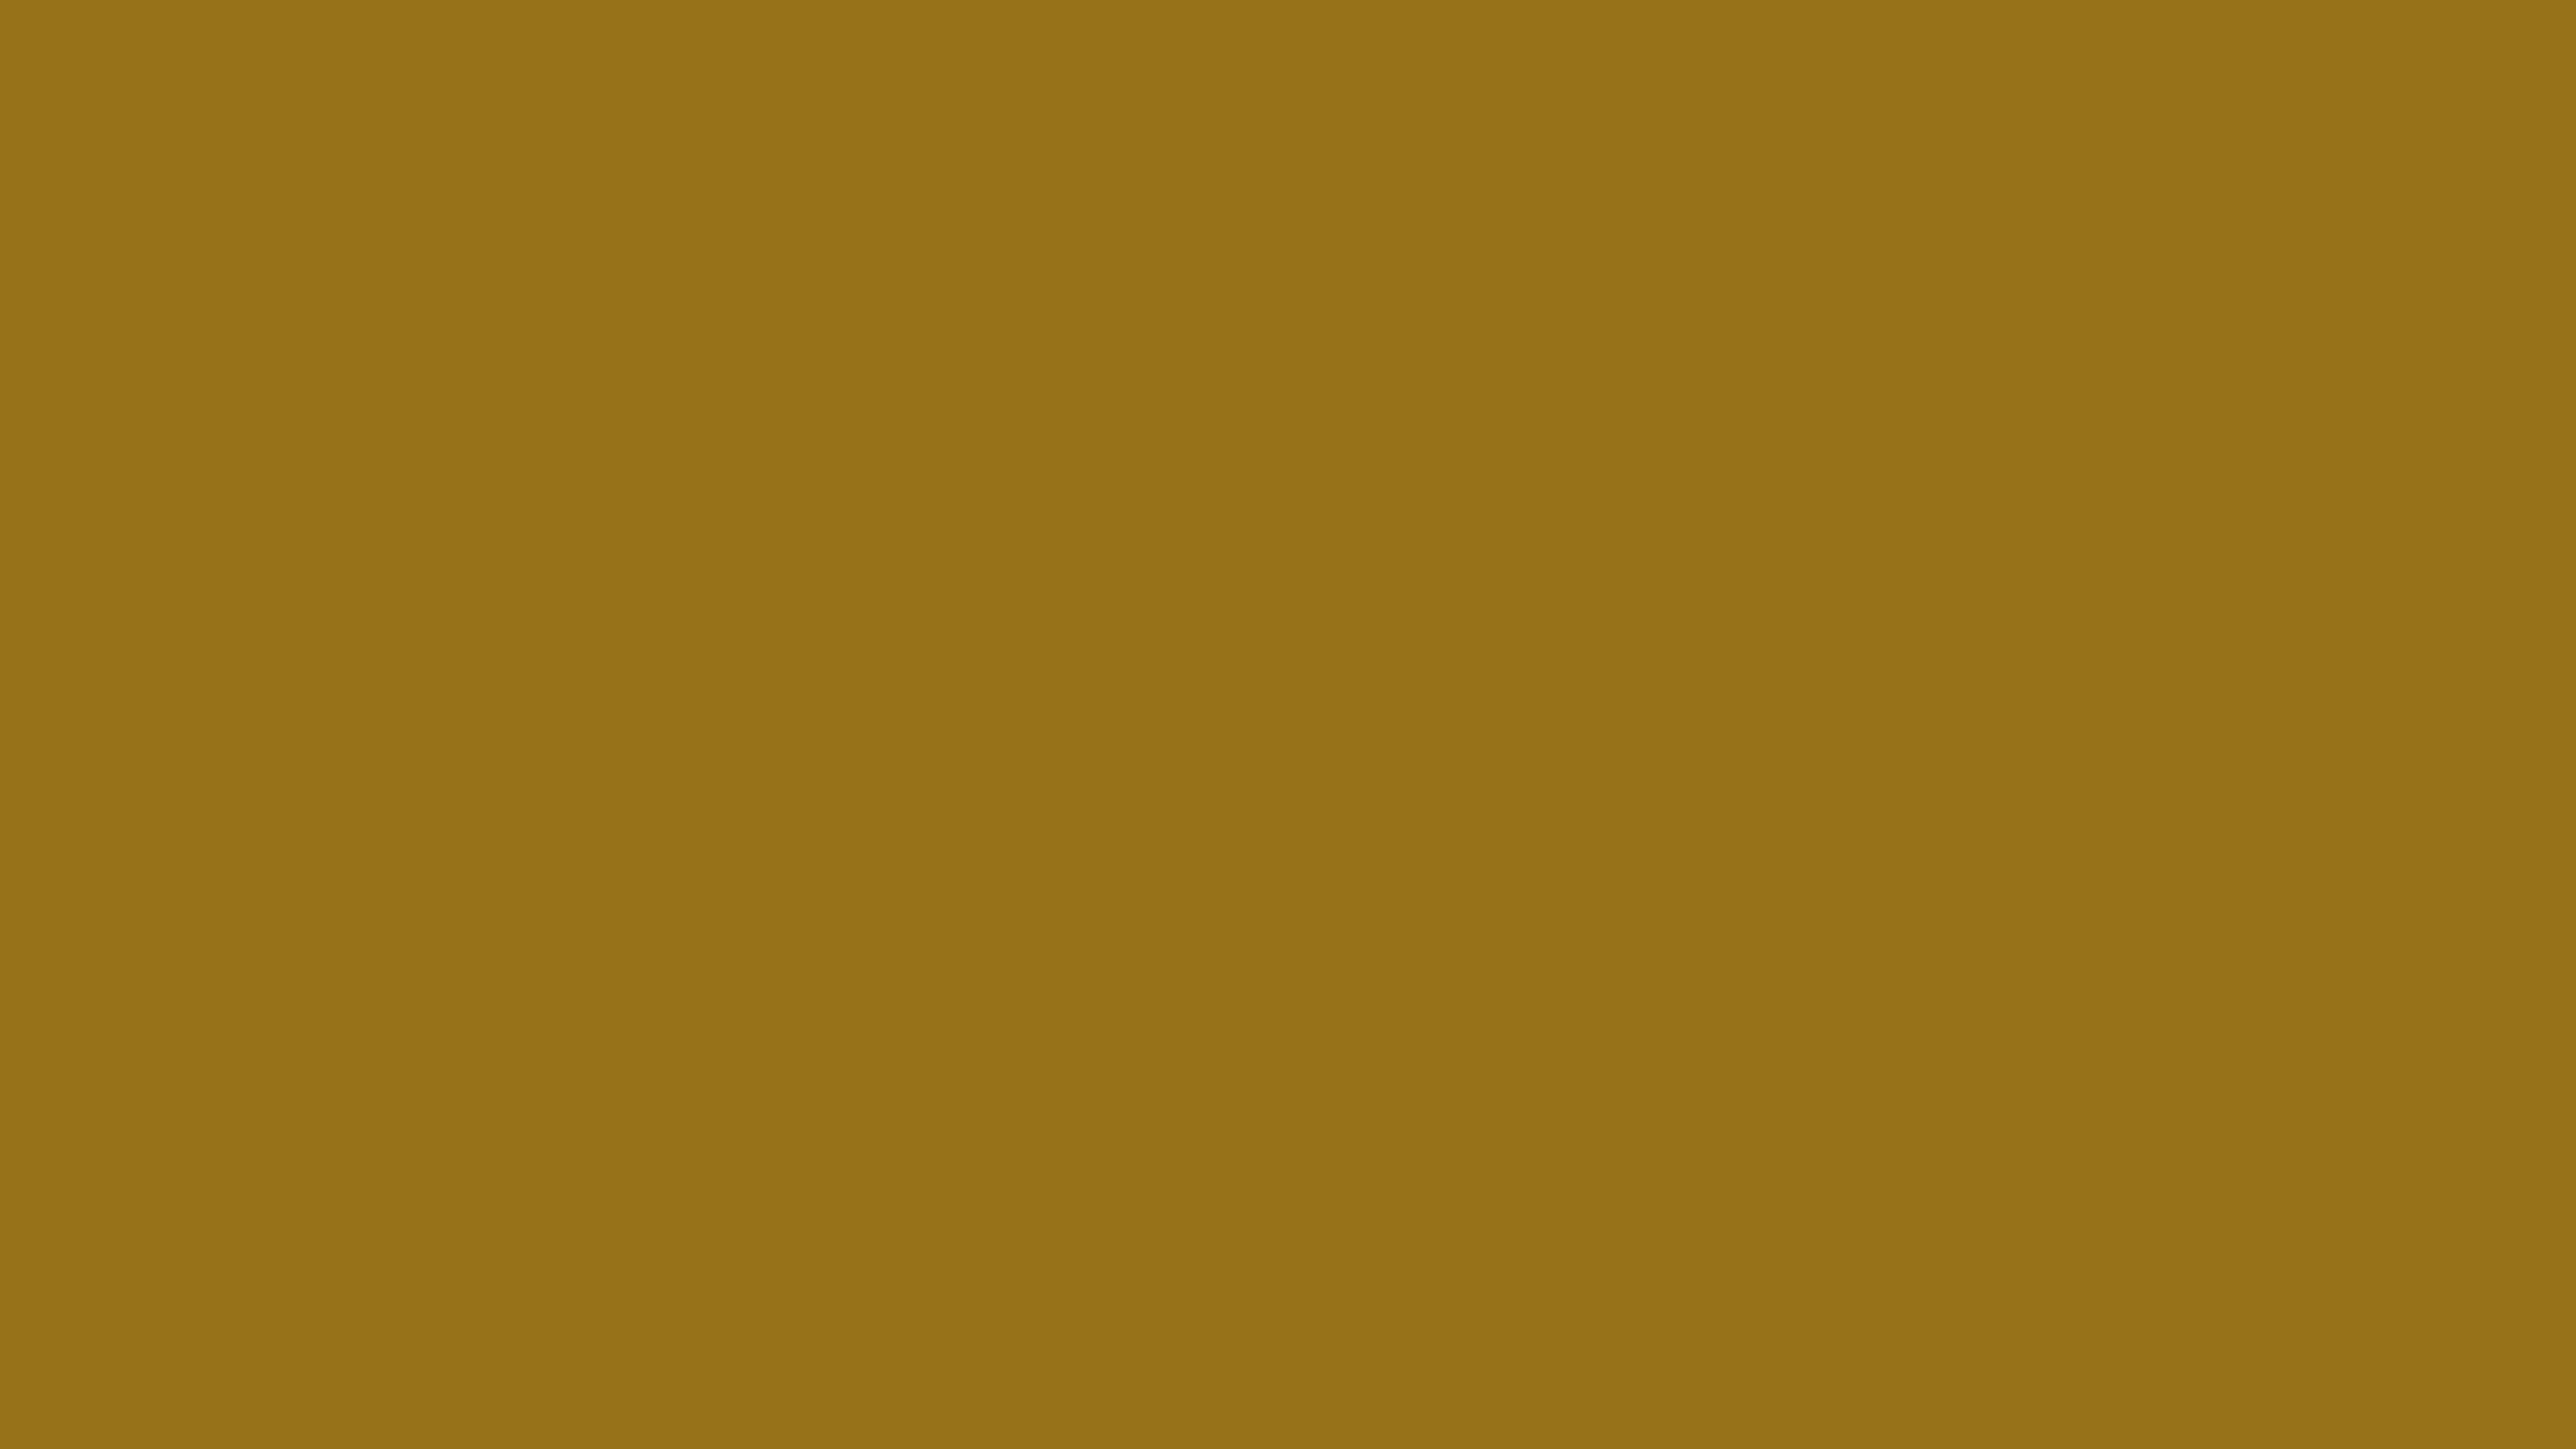 3840x2160 Mode Beige Solid Color Background